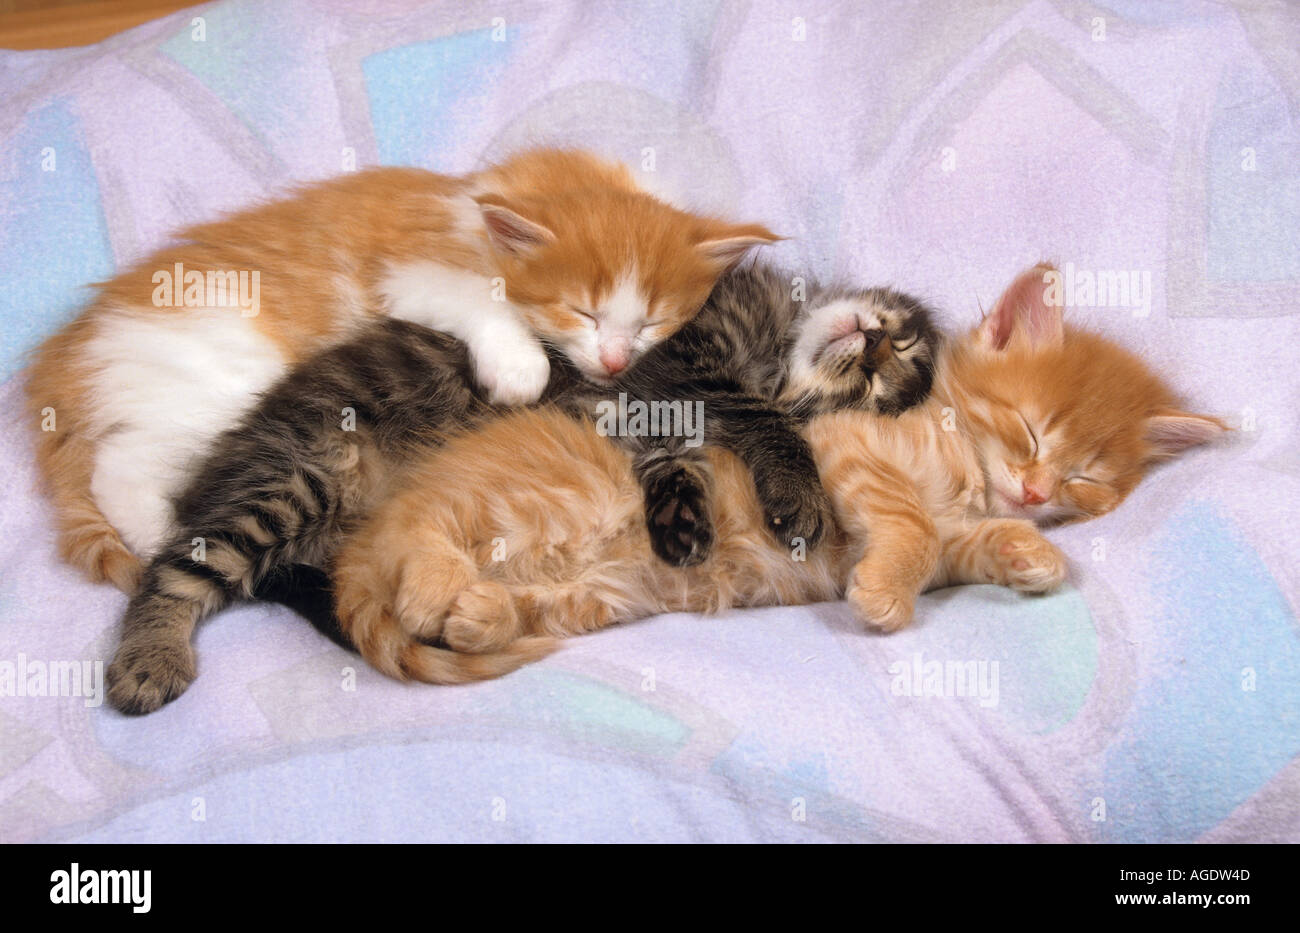 How Much Sleep Is Normal For Kittens? - Petcha